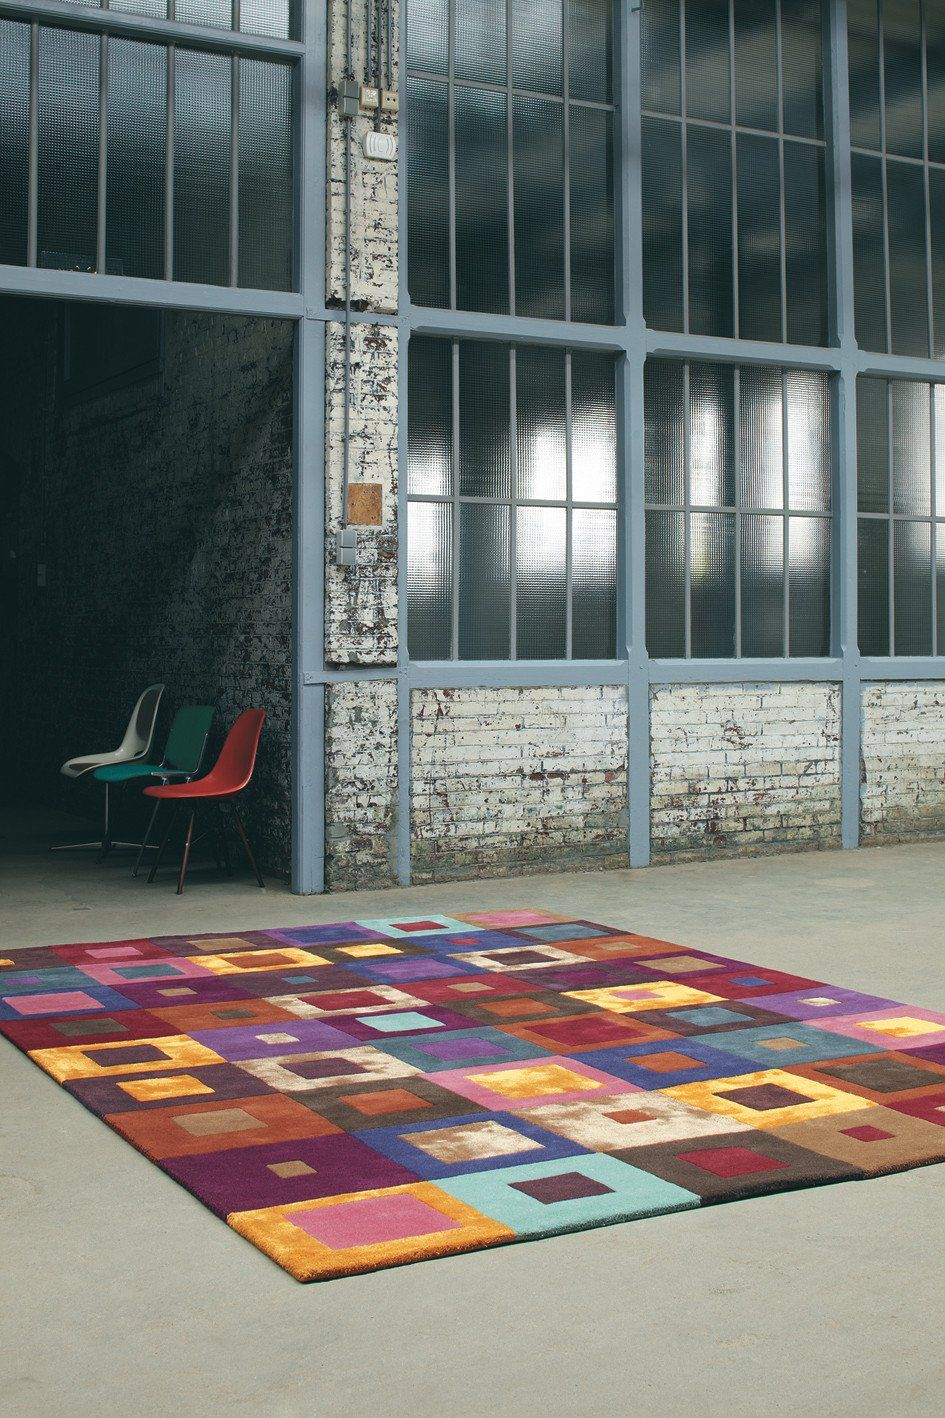 Brink Campman Estella Carre 84400 In 2020 Rugs Rug Design Multicoloured Rug